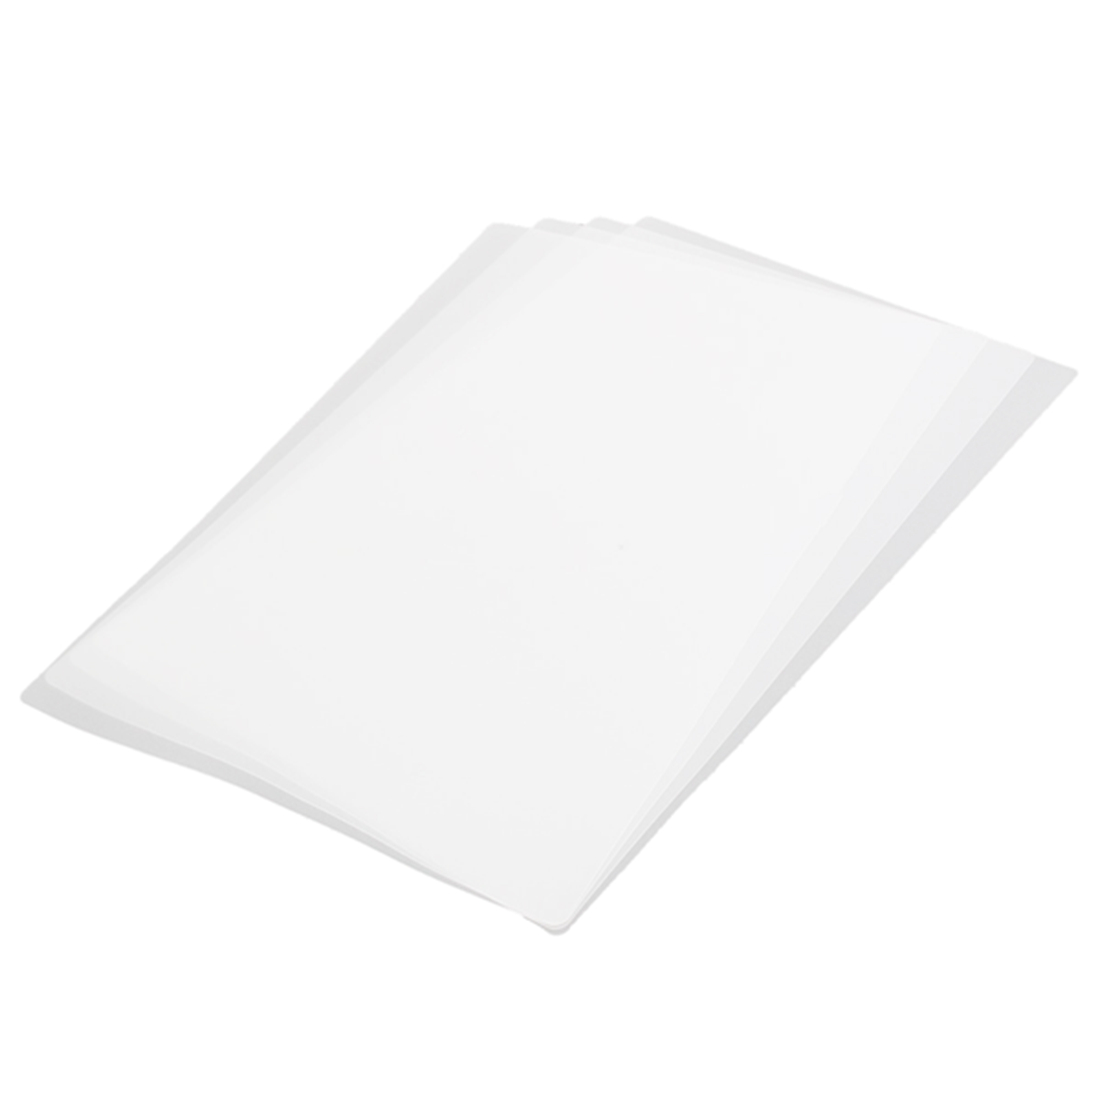 4 sheetsTransparent plastic mattresses perspective pad protection cover